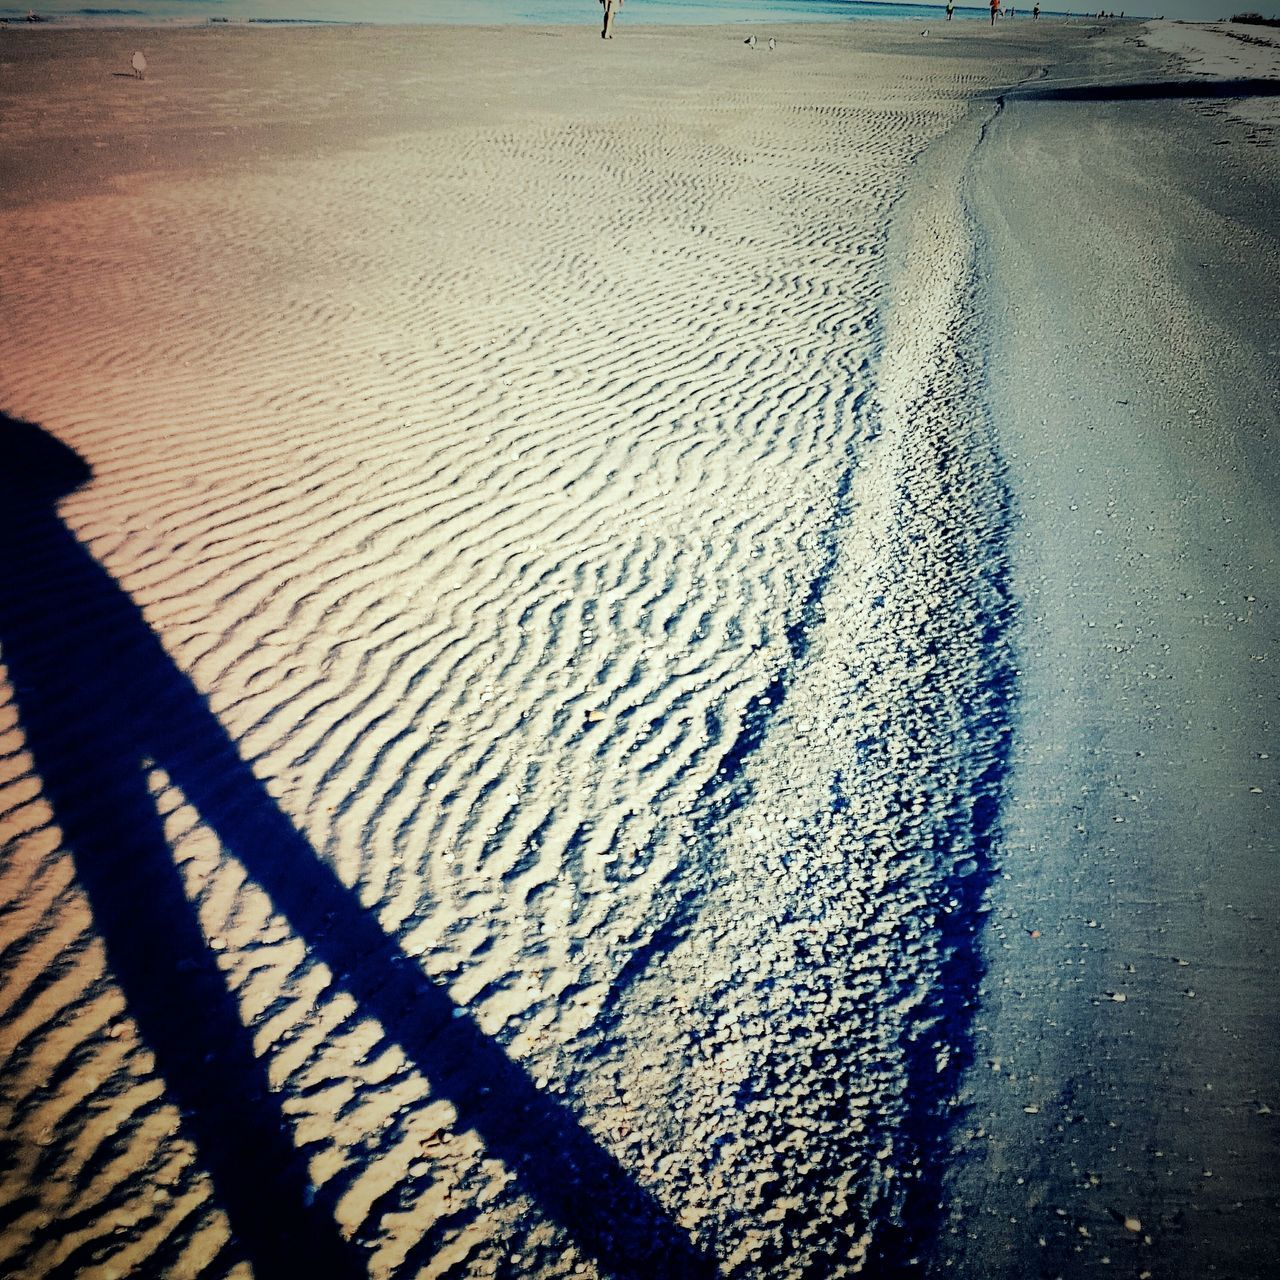 Early morning beach walks are so relaxing!!! Beach Sand Sandripples Shadow Myshadow Nature Sandy Beach Saltlife Florida Life Untouched Better Look Twice The City Light